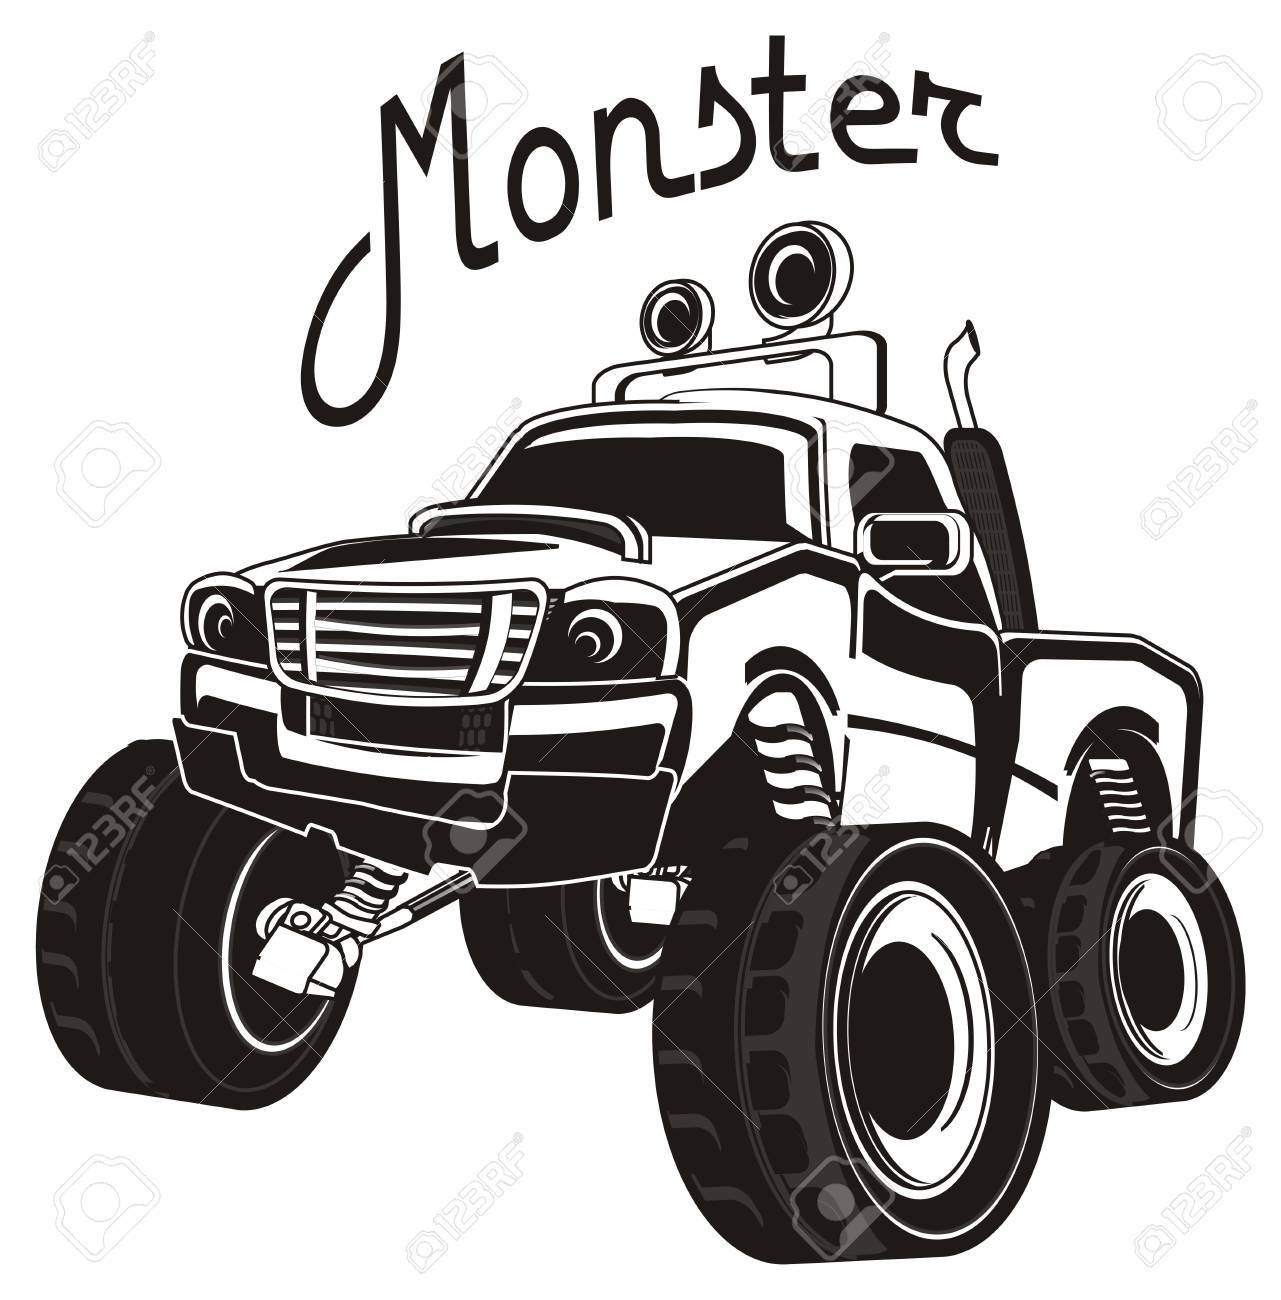 black and white monster truck and his name.